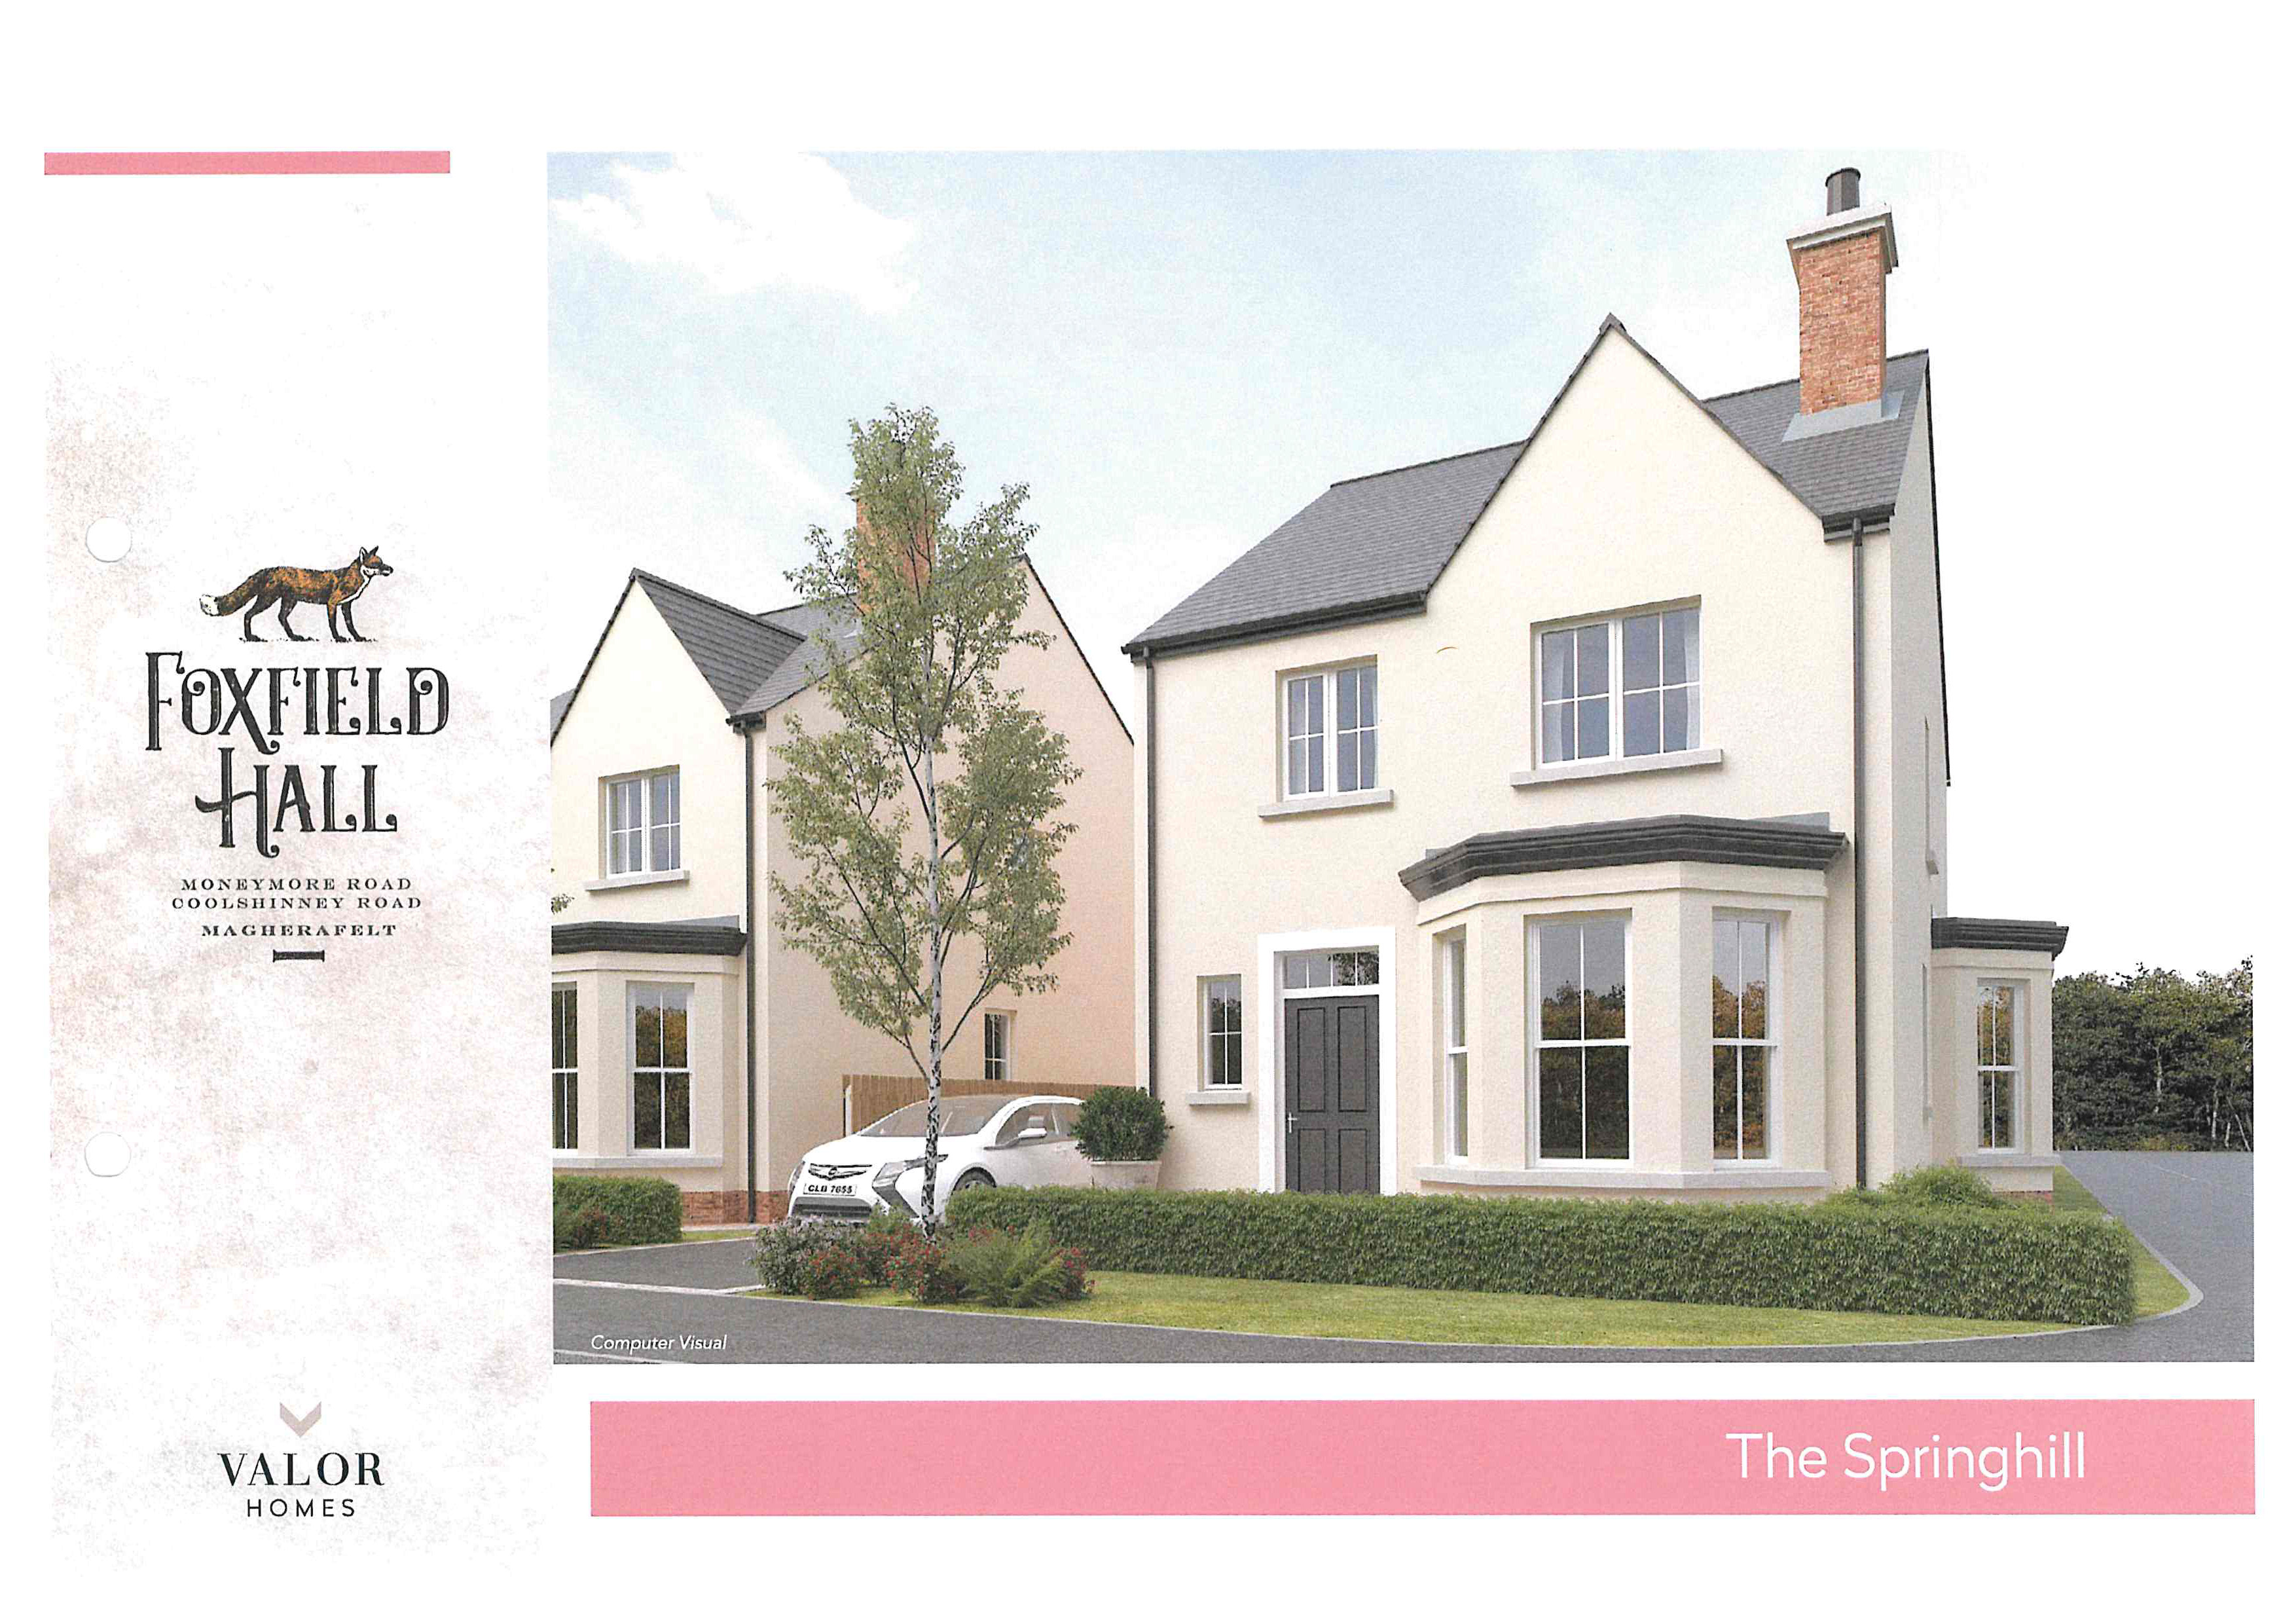 The Springhill new front